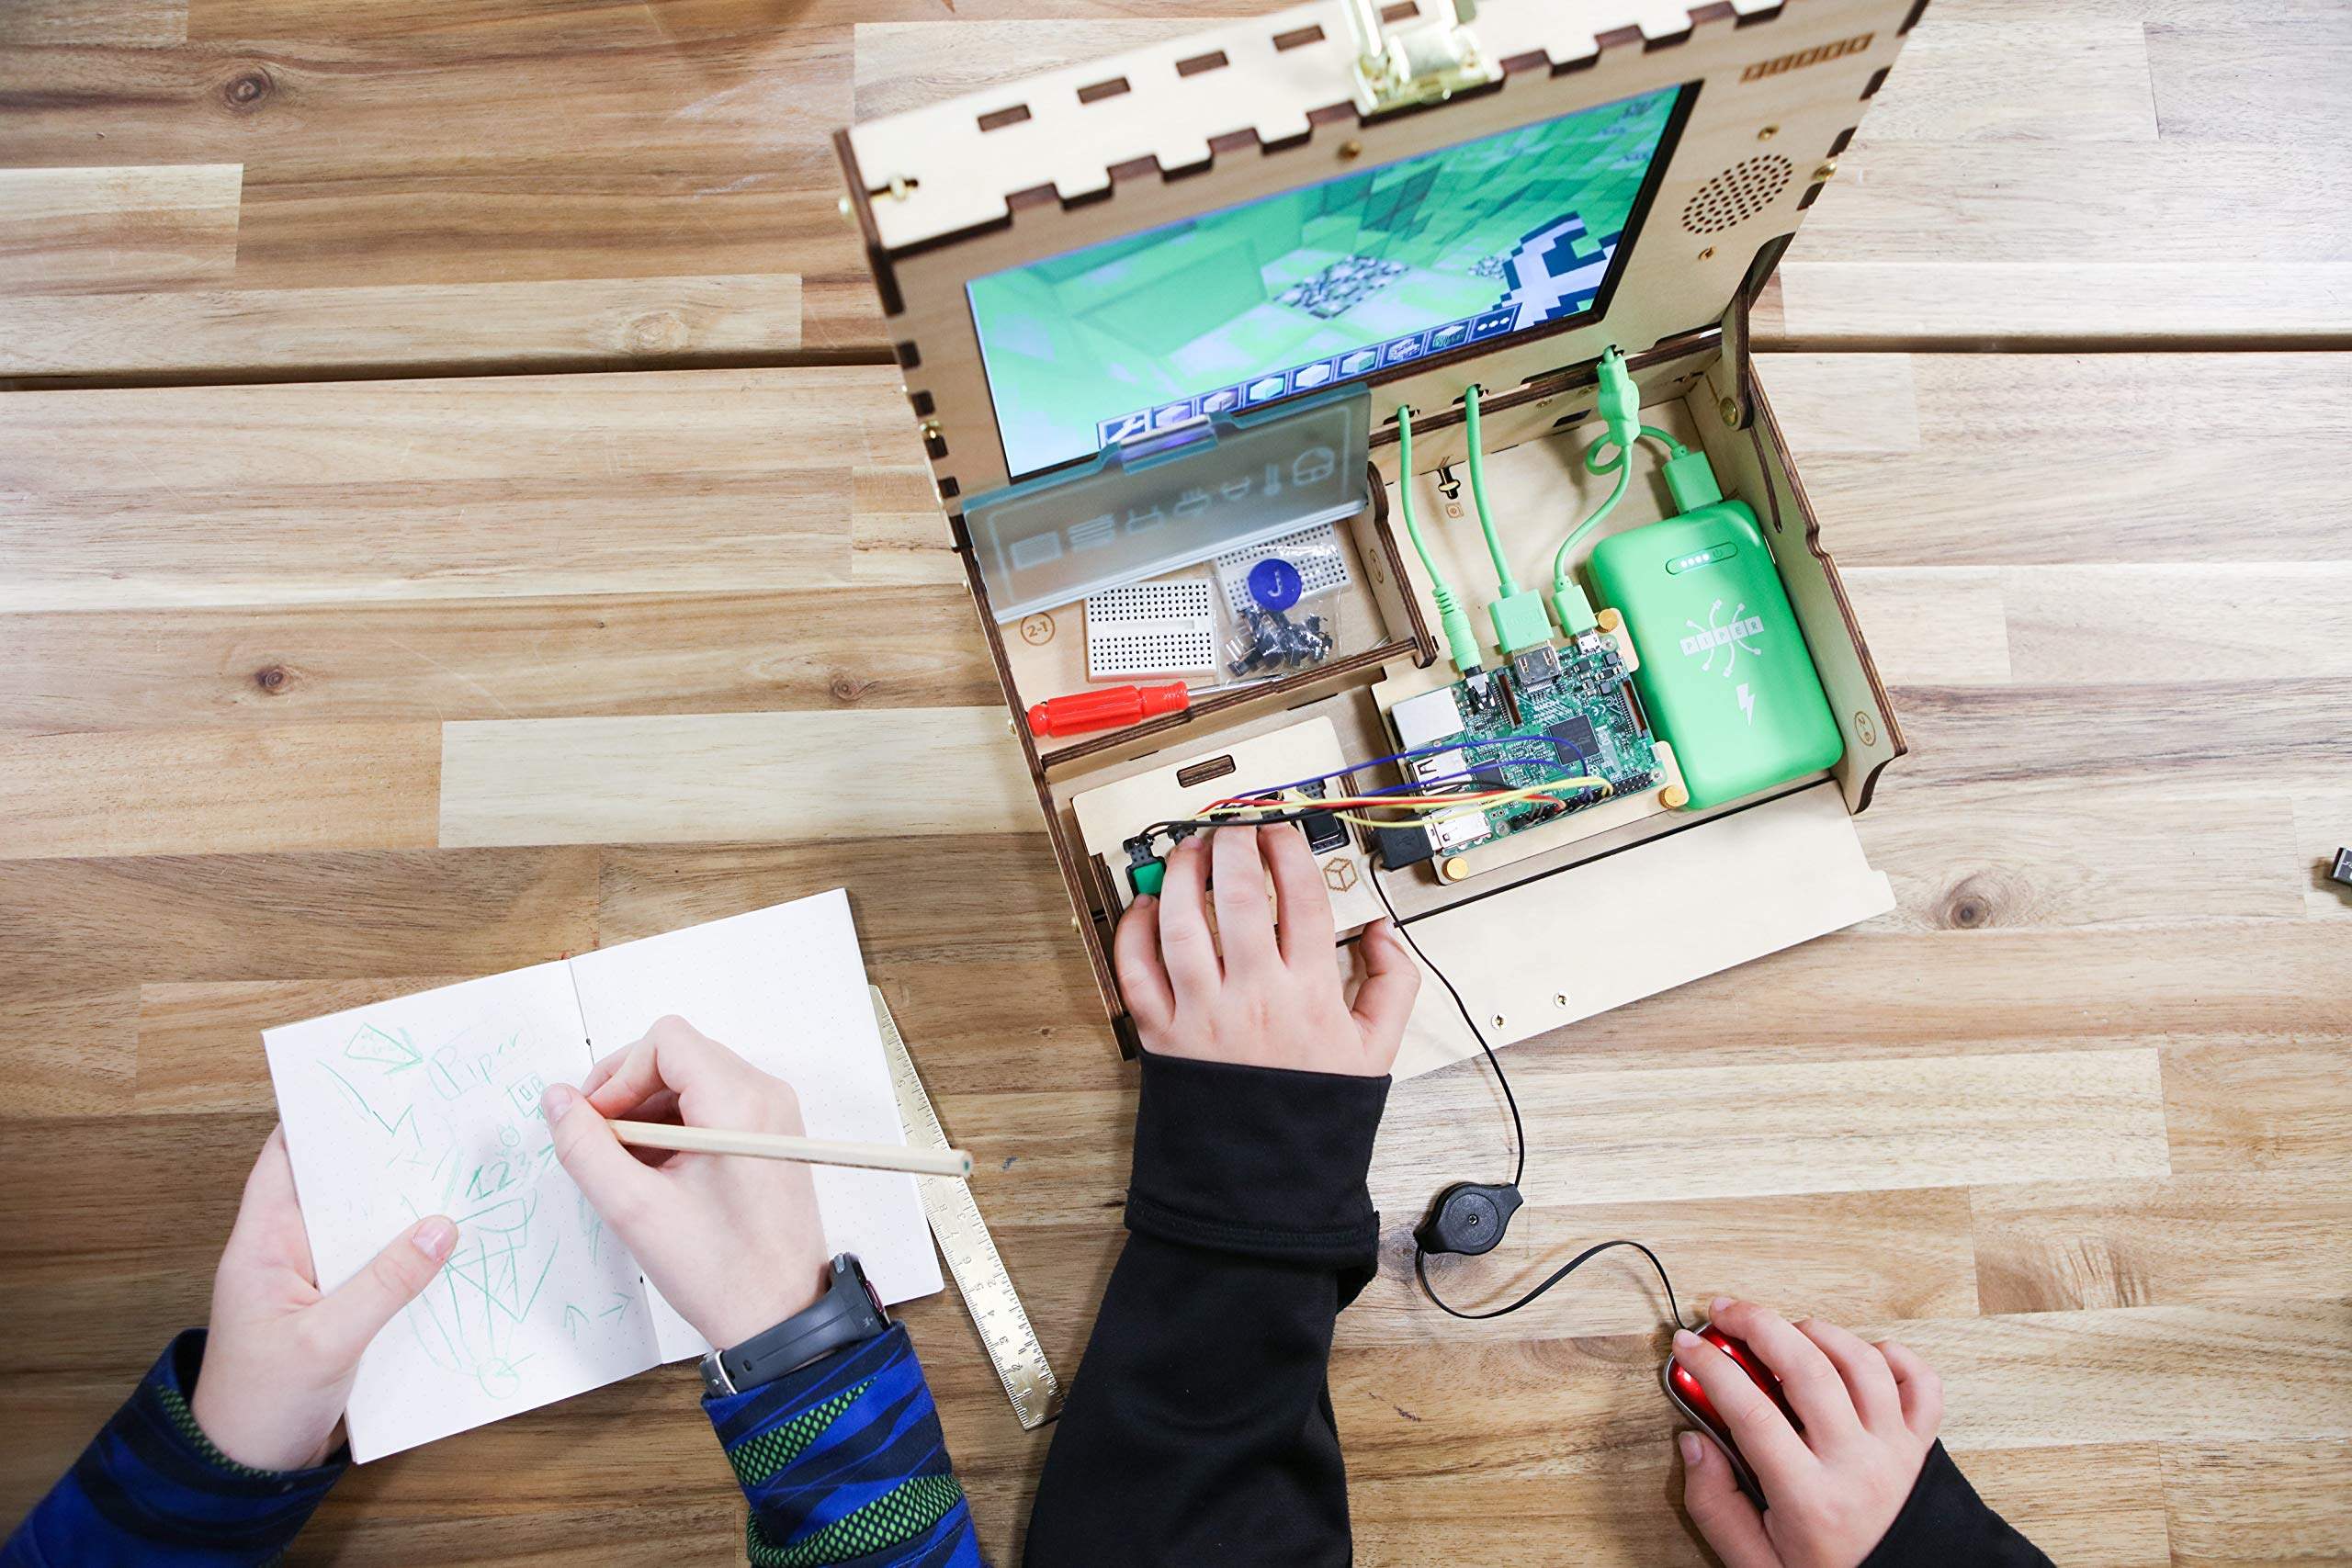 Piper Computer Kit 2 - Teach Kids to Code - Hands On STEM Learning Toy with Minecraft: Raspberry Pi (New) by Piper (Image #7)